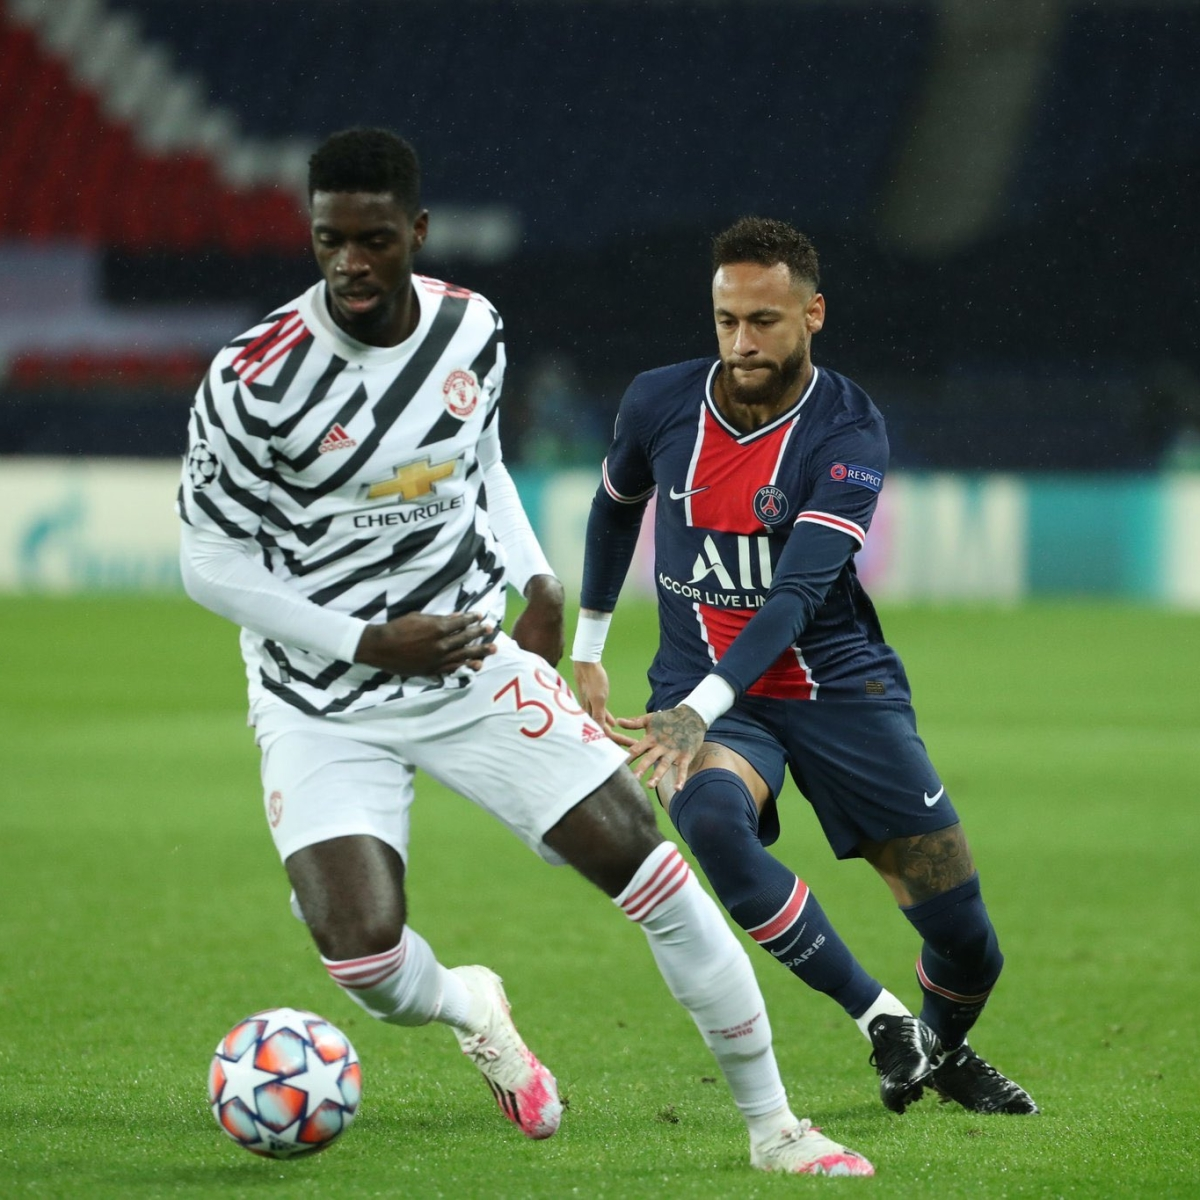 'He owns Paris': Wikipedia edited to hail Axel Tuanzebe's massive performance against Mbappe